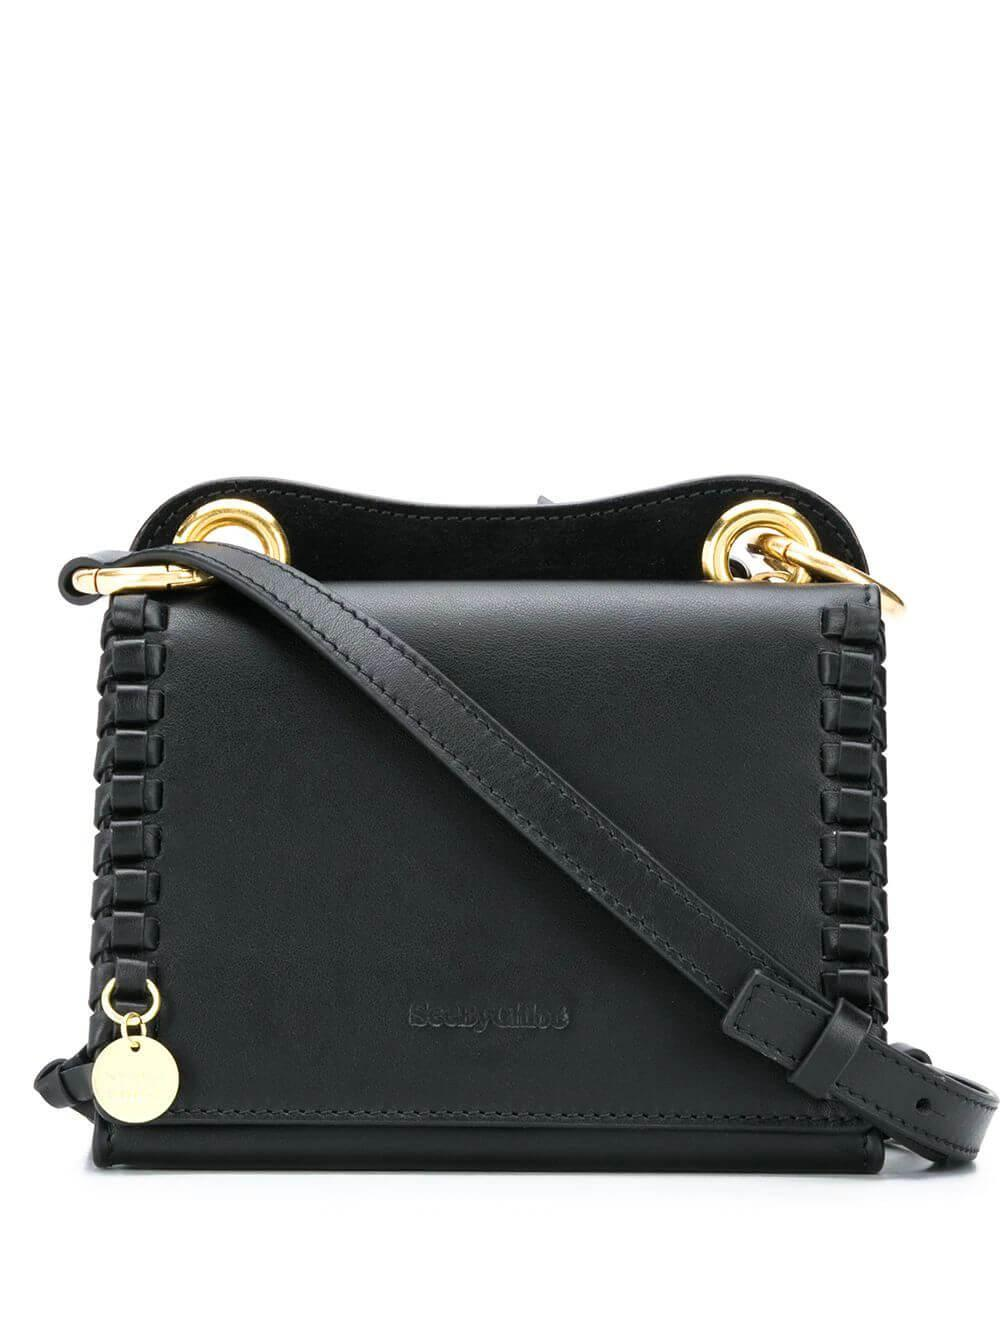 Small Crossbody With Whipstitch Detail Item # CHS20ASA68695